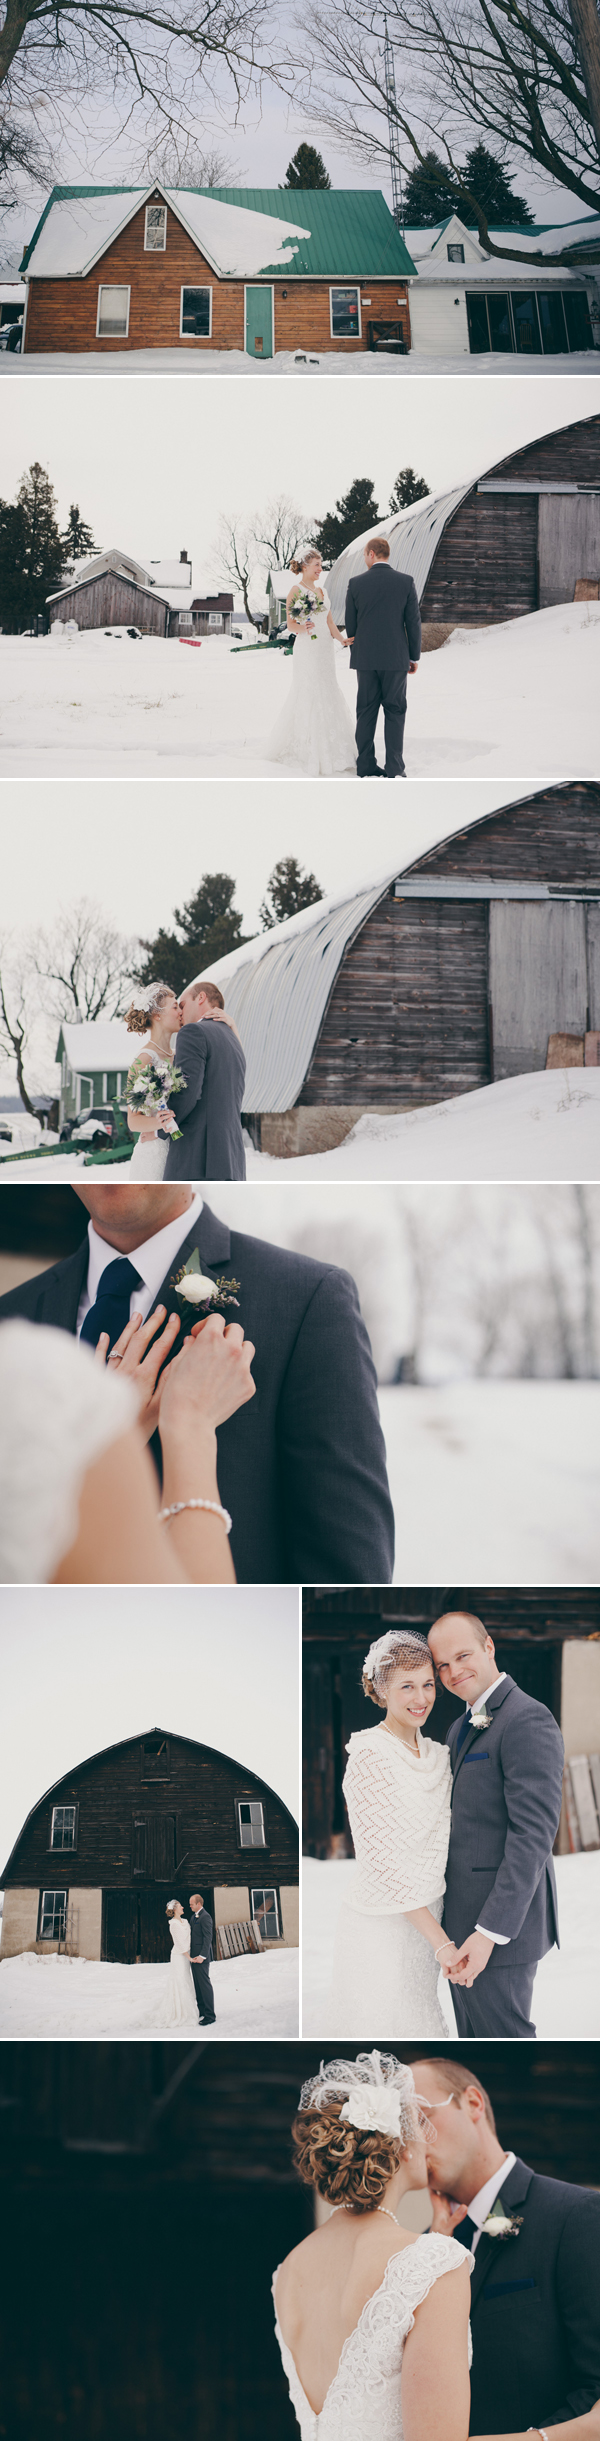 Winter country wedding-02